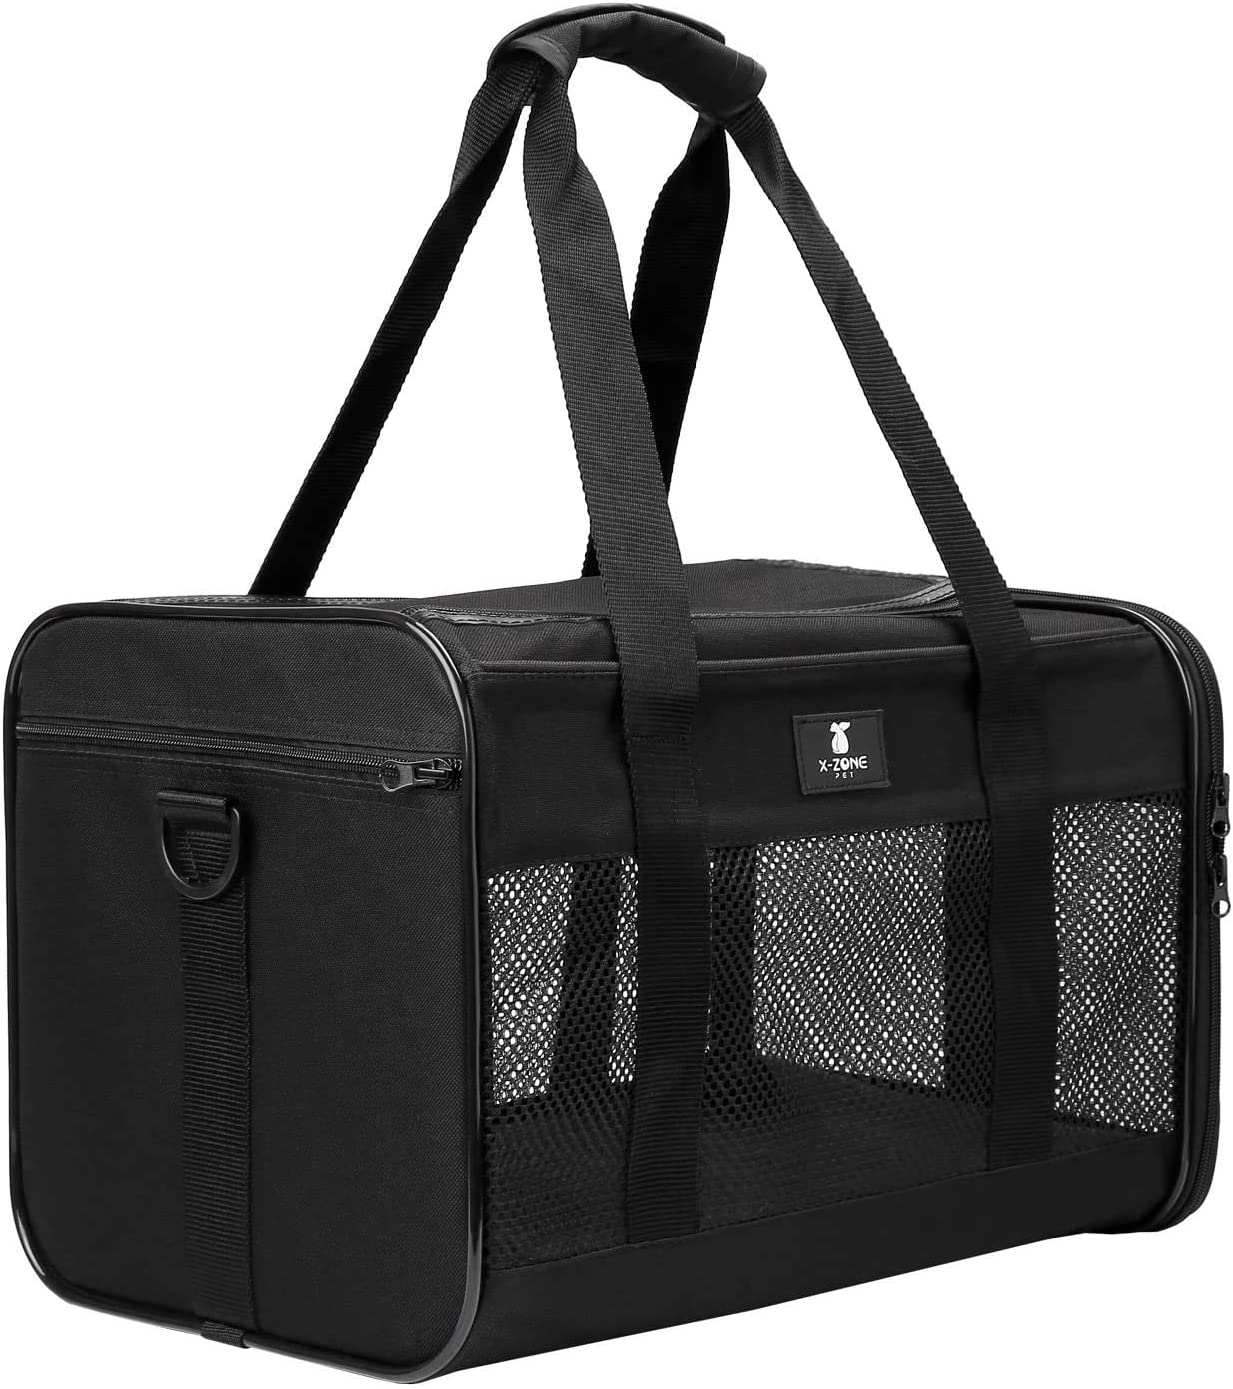 X-ZONE PET Airline Approved Soft-Sided Pet Travel Carrier for Dogs and Cats, Medium Cats Small Cats Carrier, Dog Carrier for Small Dogs, Portable Pet Travel Carrier, Black : Pet Supplies